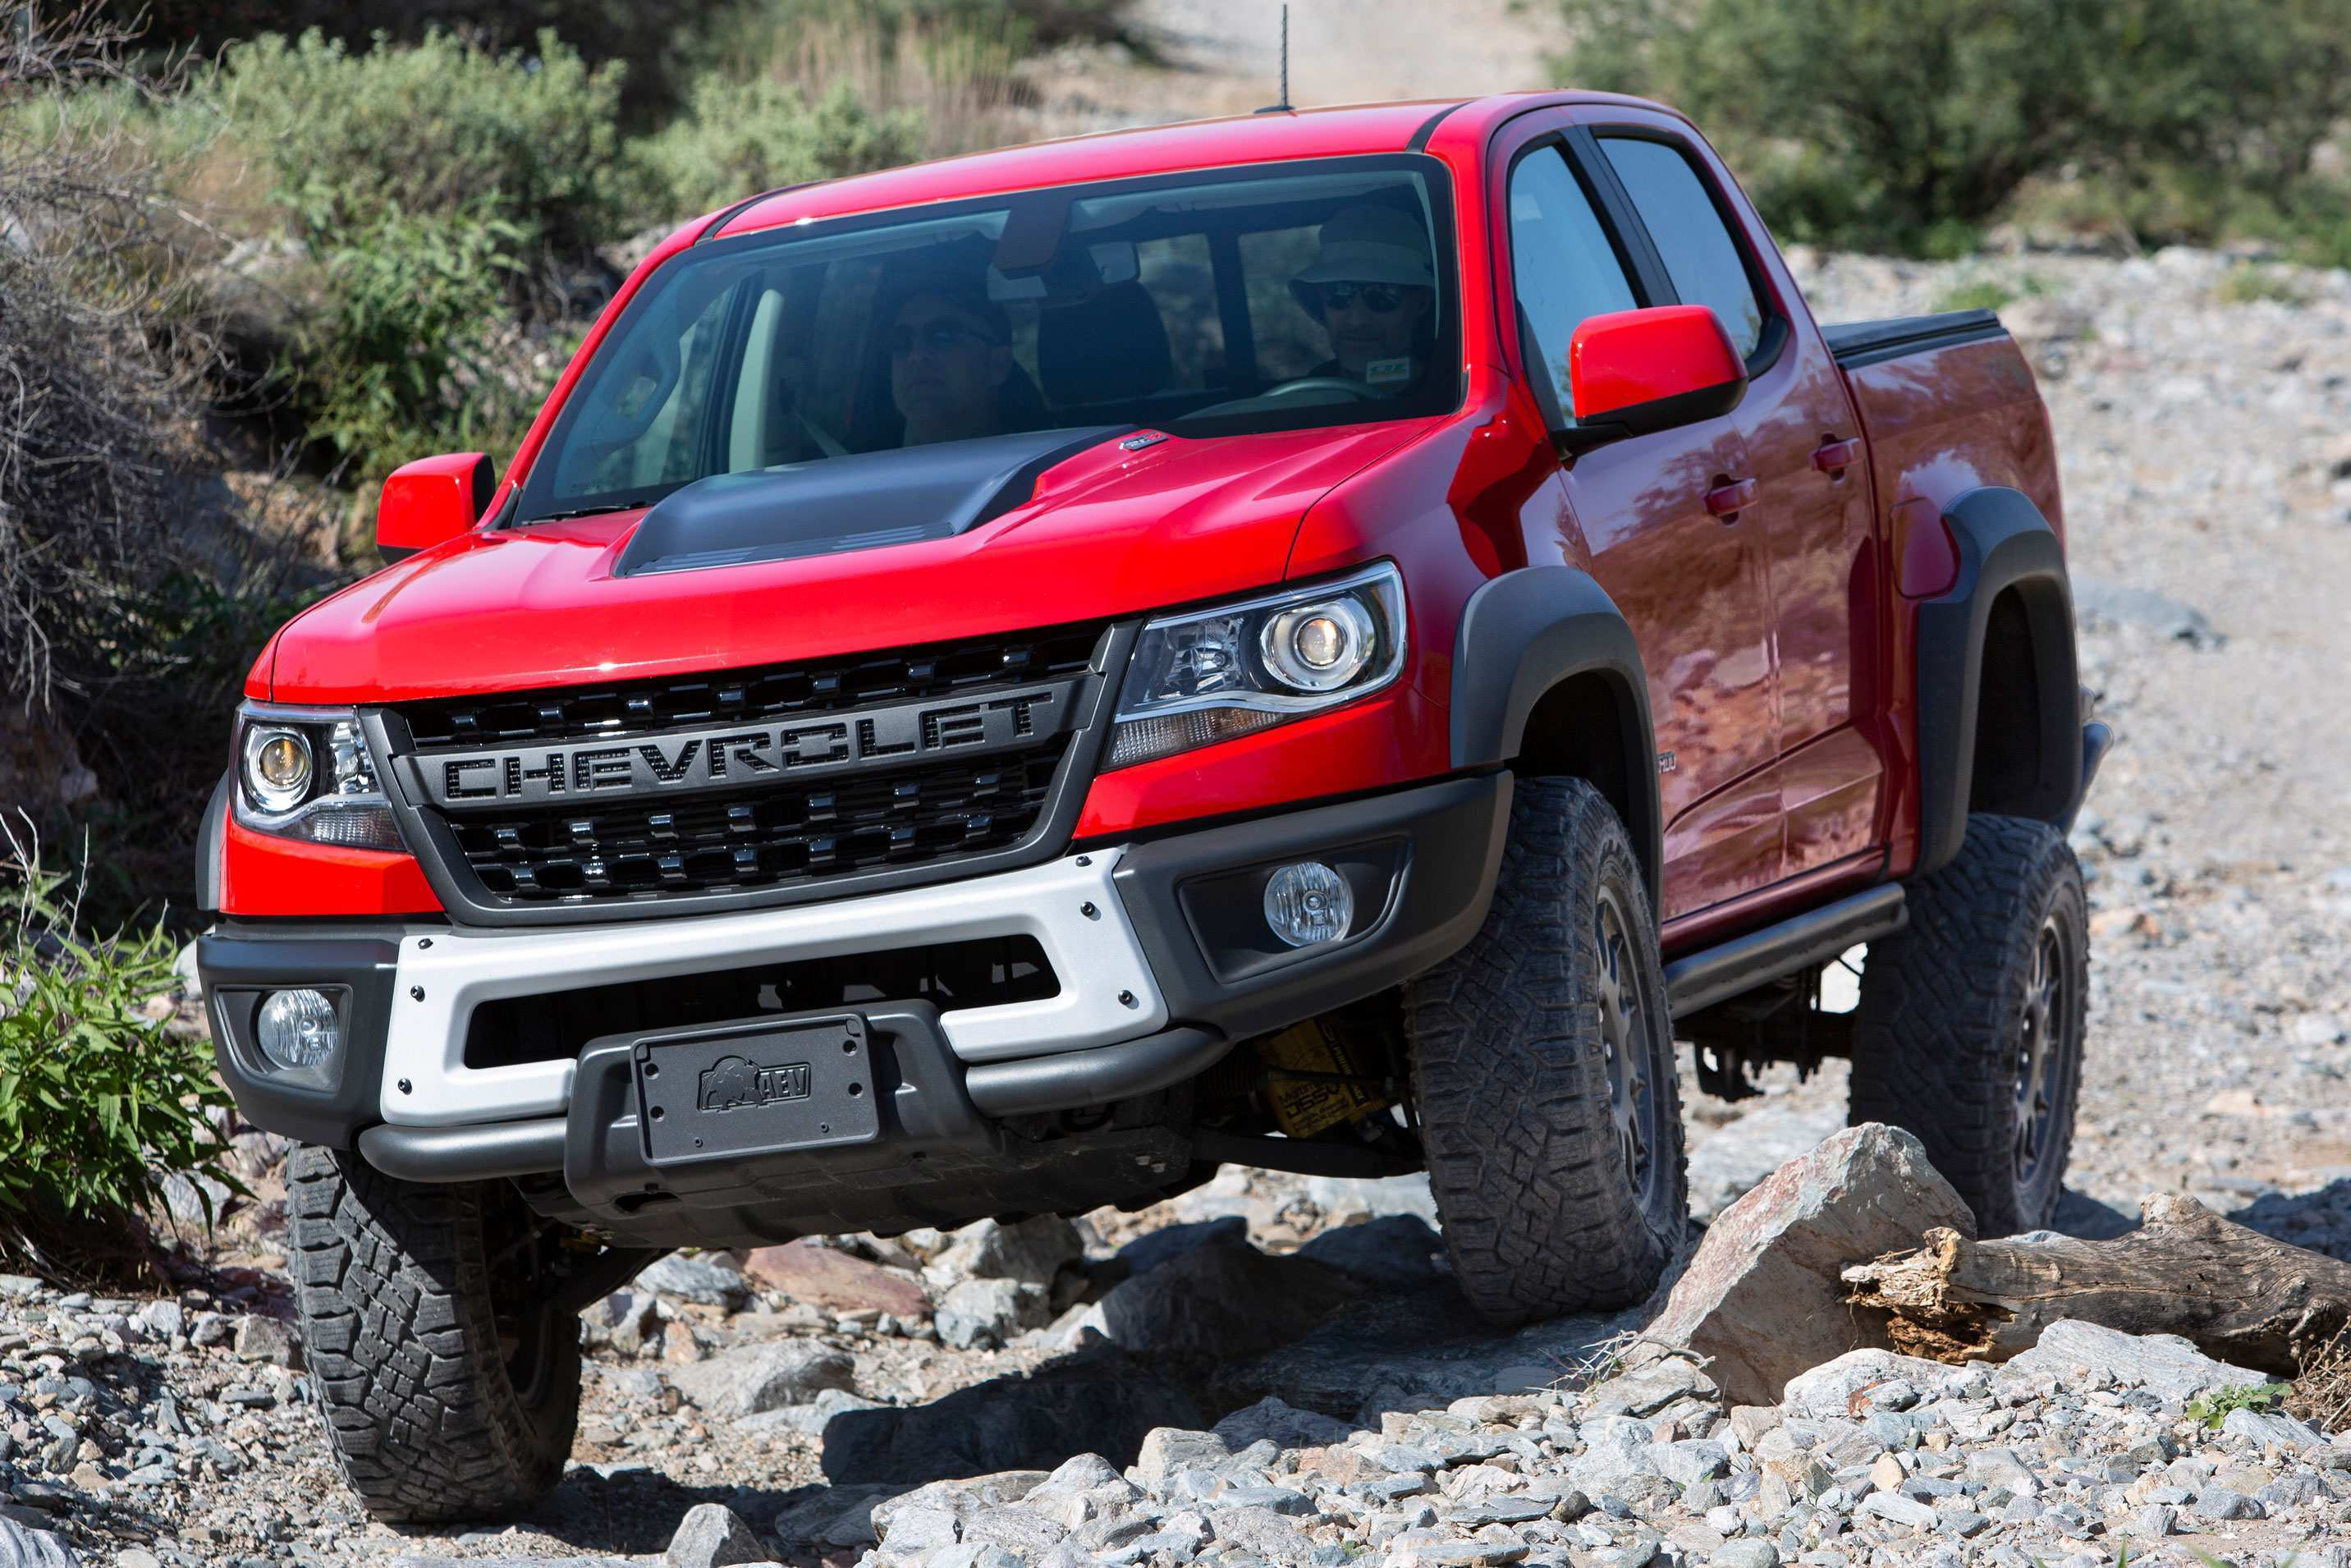 48 A 2020 Chevy Colorado Going Launched Soon Exterior And Interior